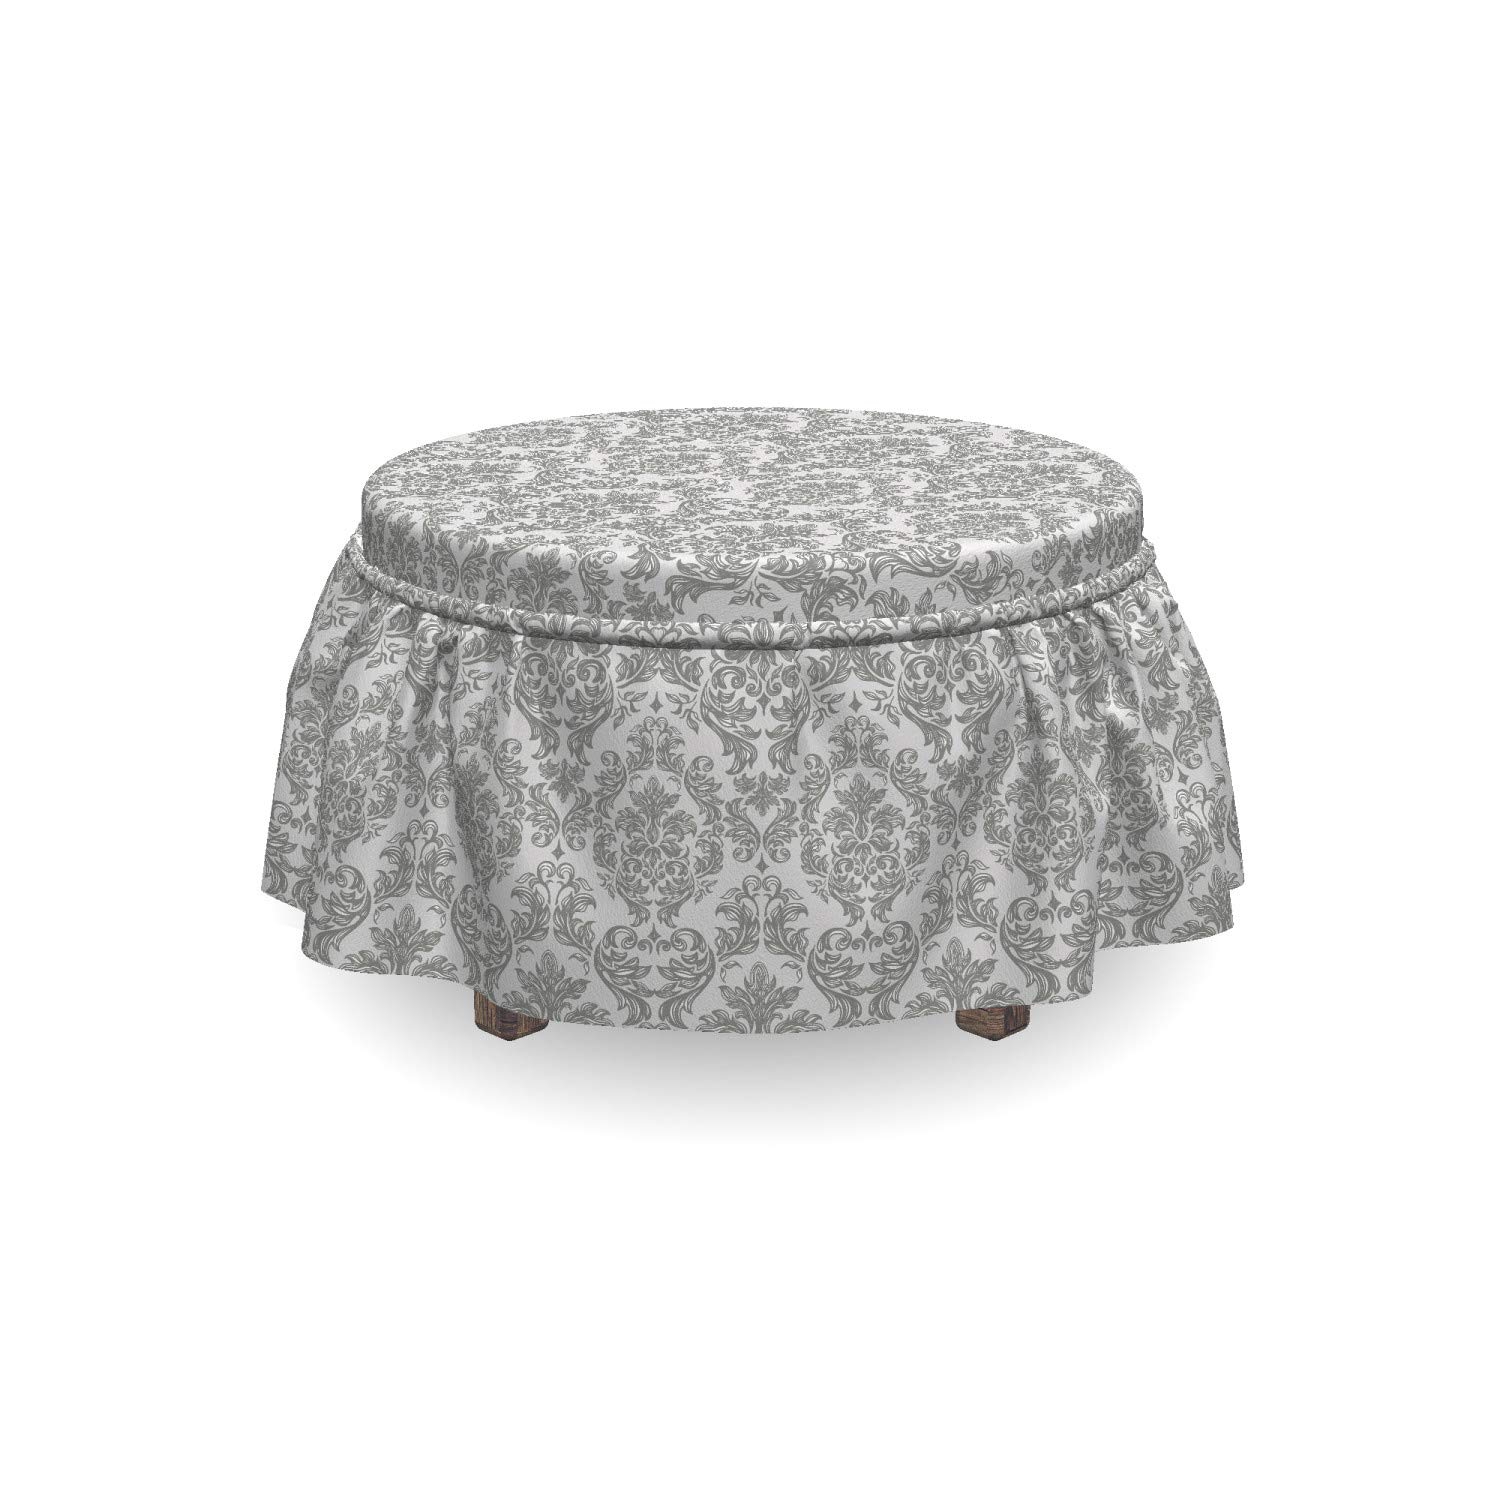 Grey Bulky Curvy Baroque Leaves 2 Piece Slipcover Set with Ruffle Skirt for Square Round Cube Footstool Decorative Home Accent Standard Size Lunarable Damask Ottoman Cover